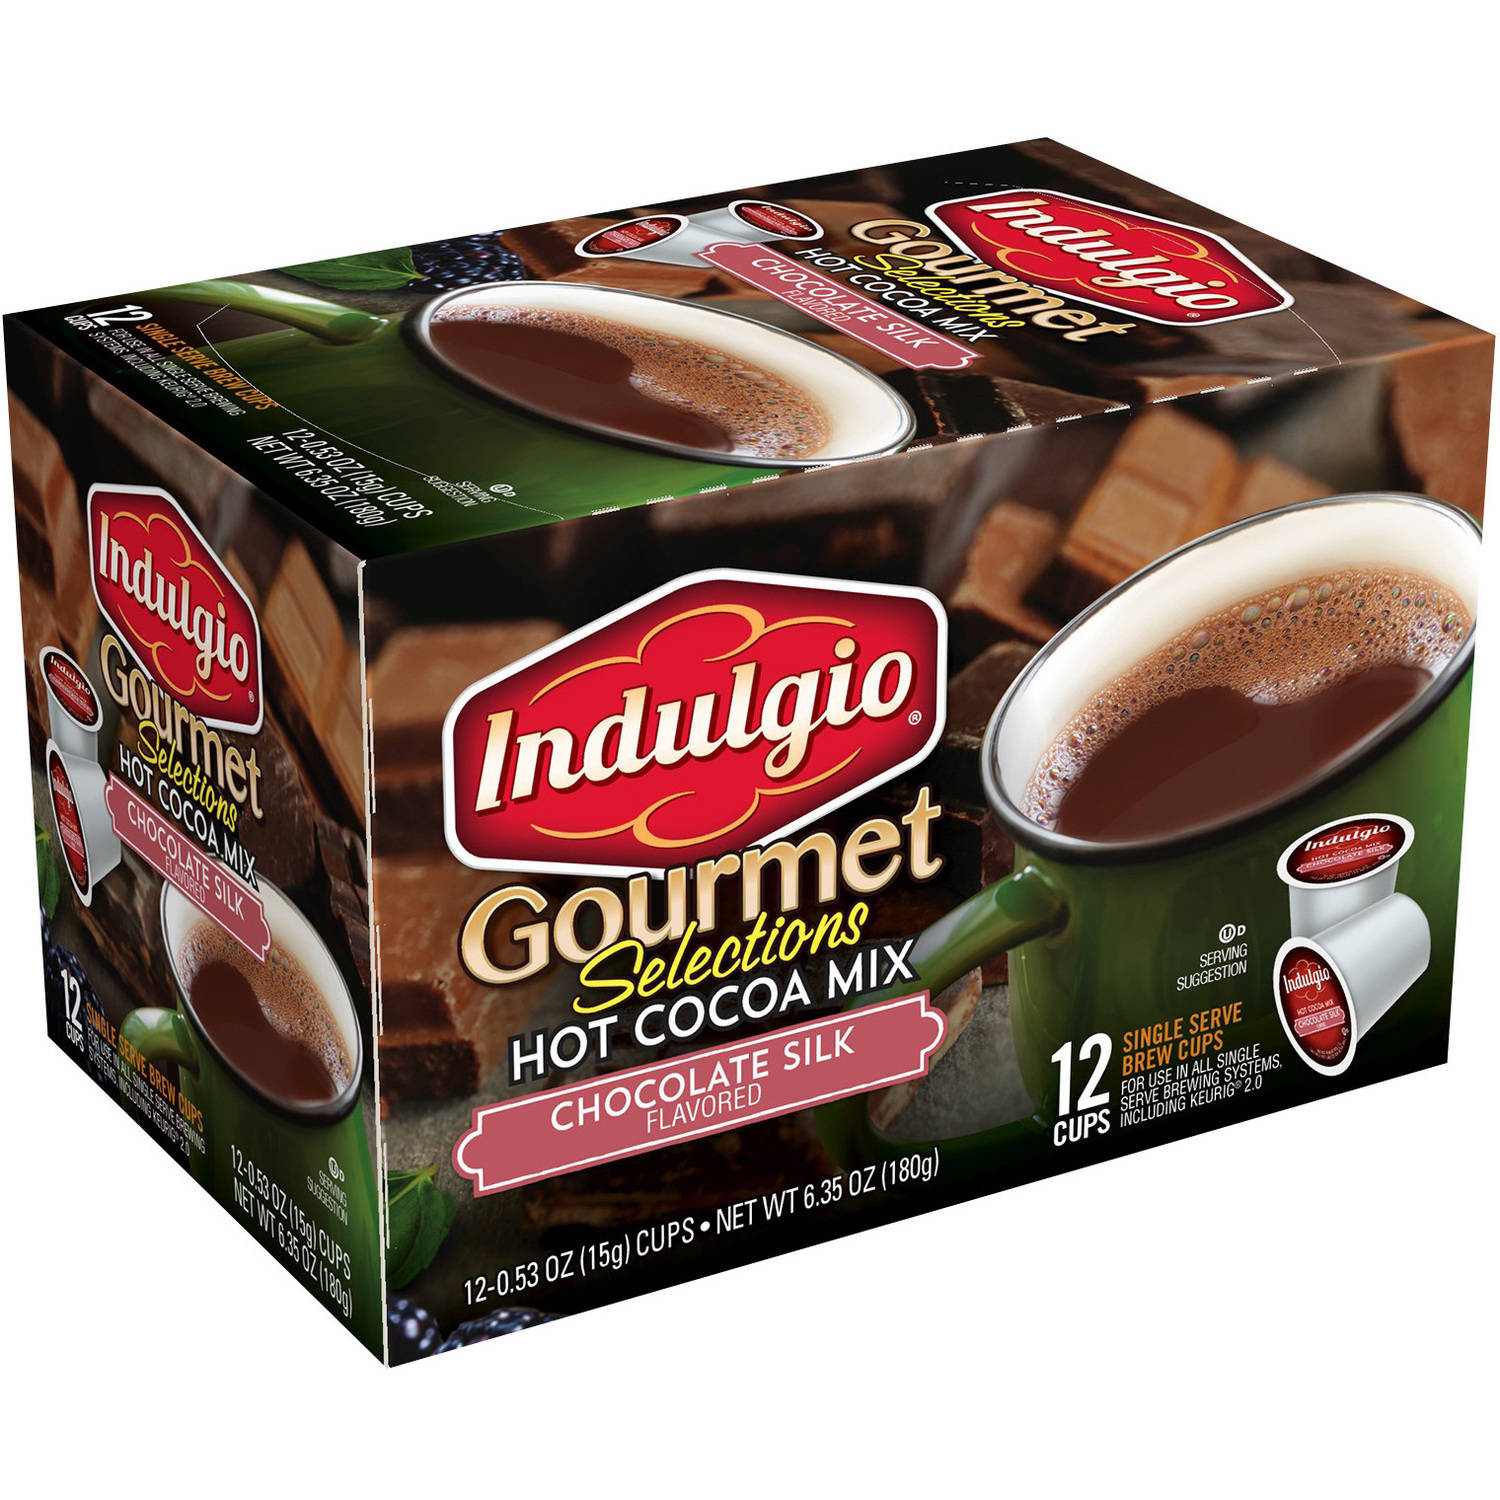 Indulgio Gourmet Selections Chocolate Silk Hot Cocoa Mix K-Cups, 0.53 oz, 12 count by Trilliant Food